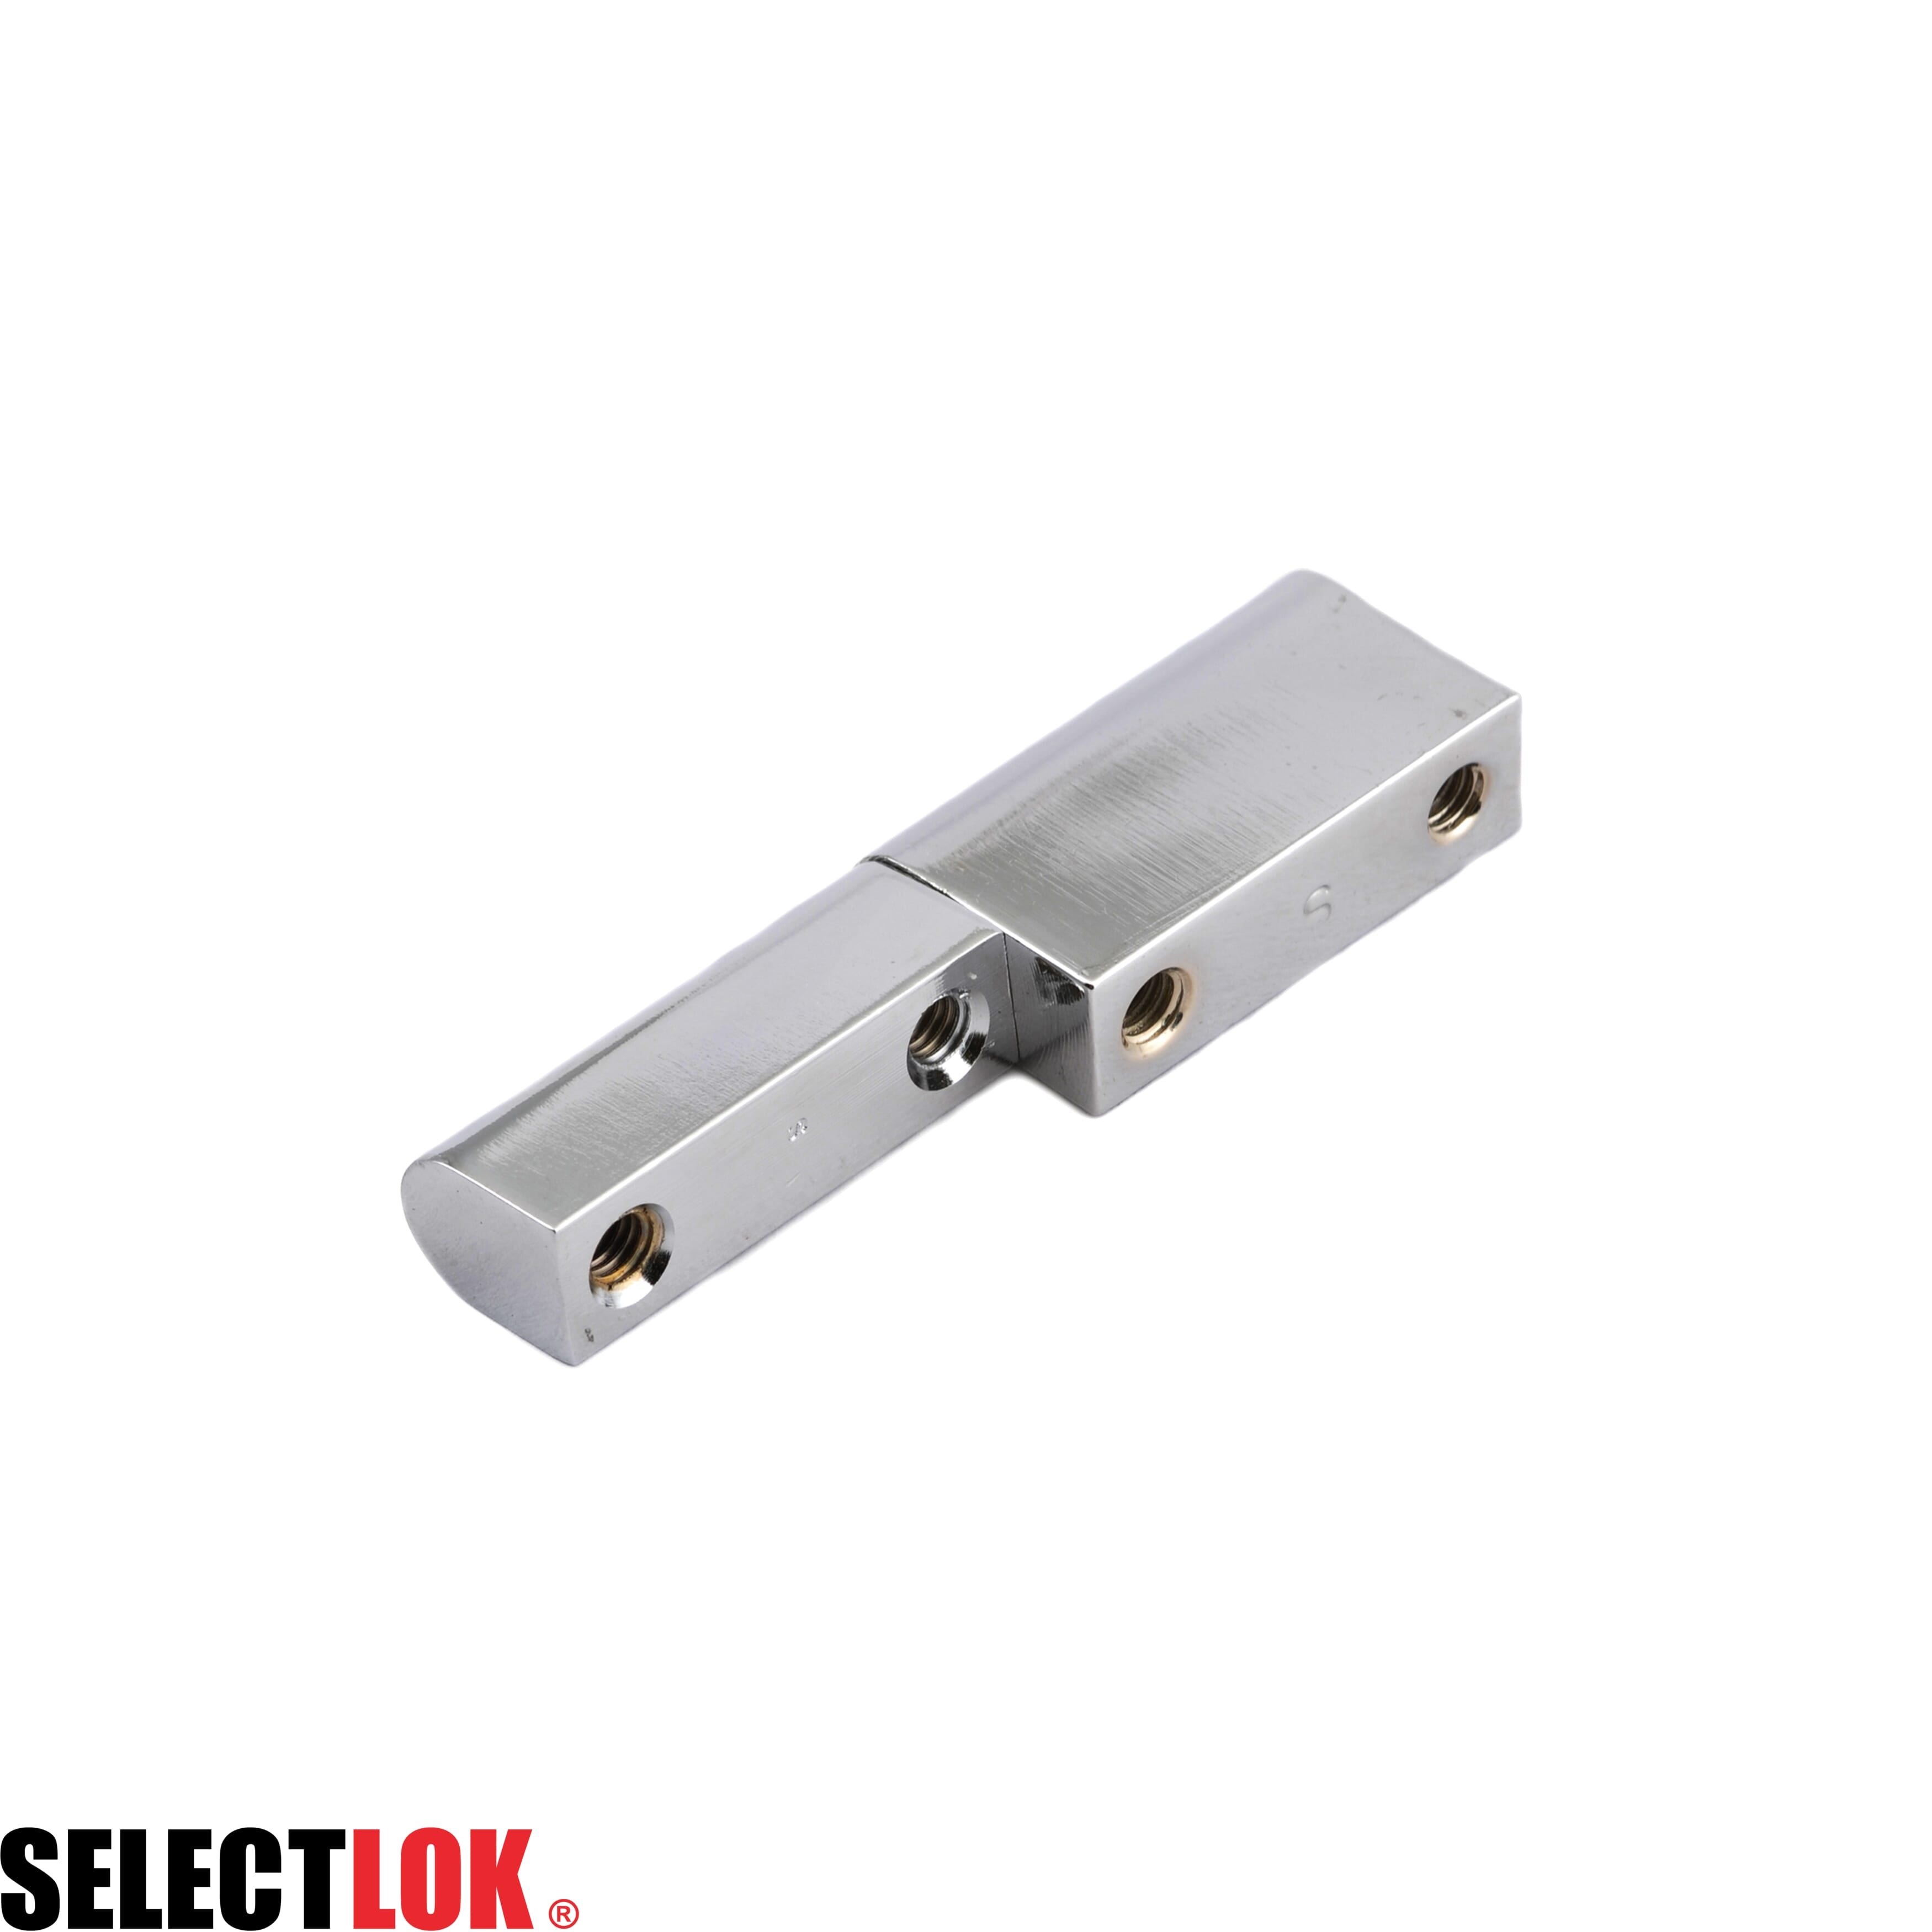 Picture of: 82mm Stepped Pintle Hinge Selectlok